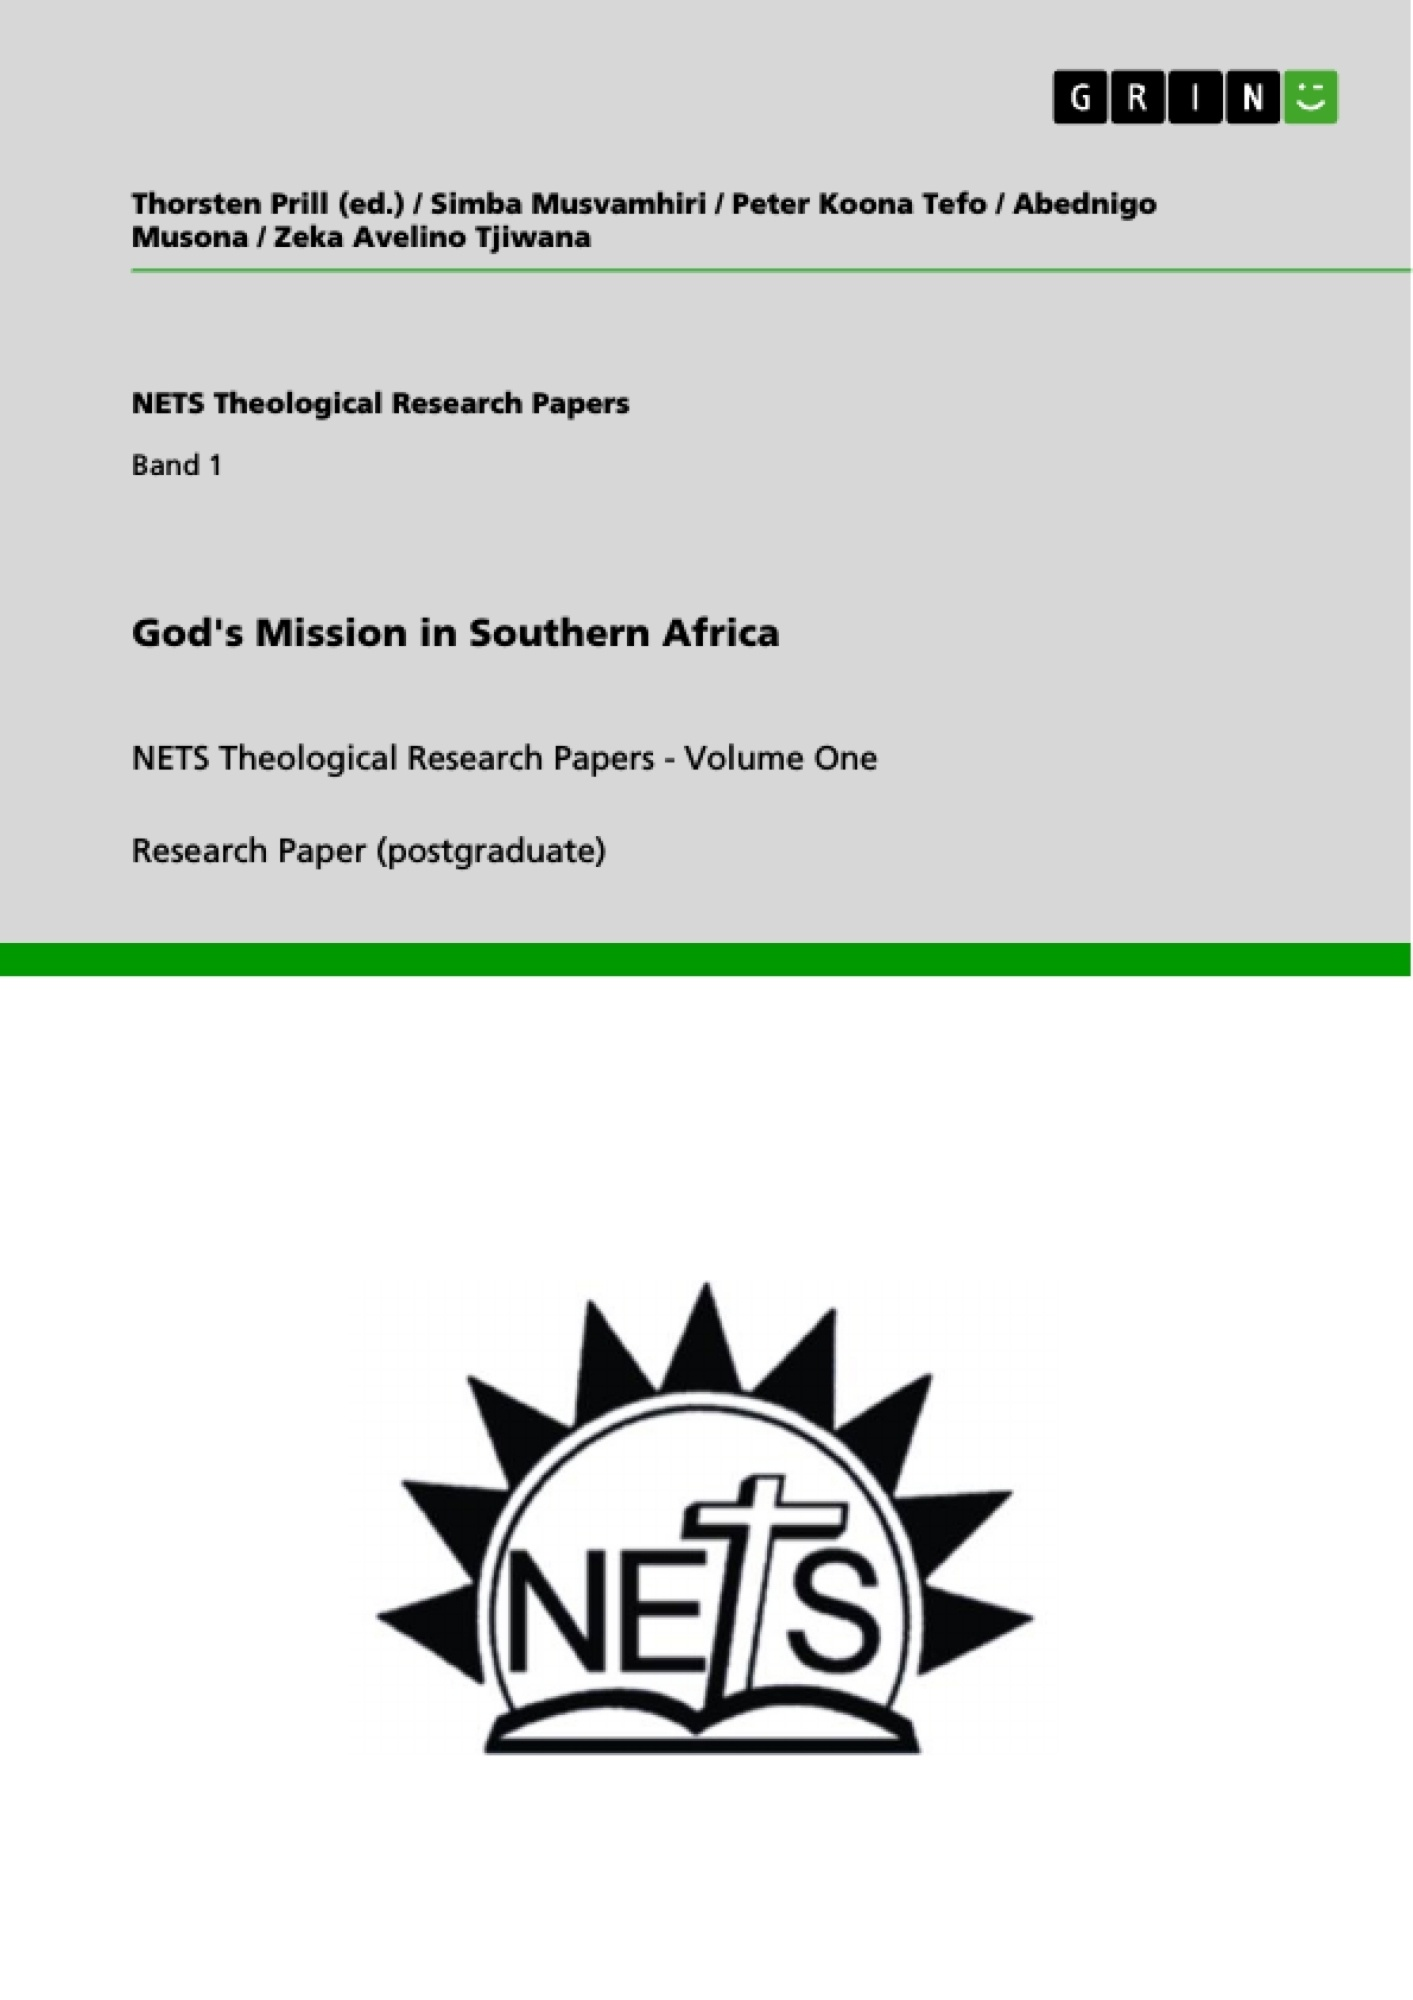 Title: God's Mission in Southern Africa